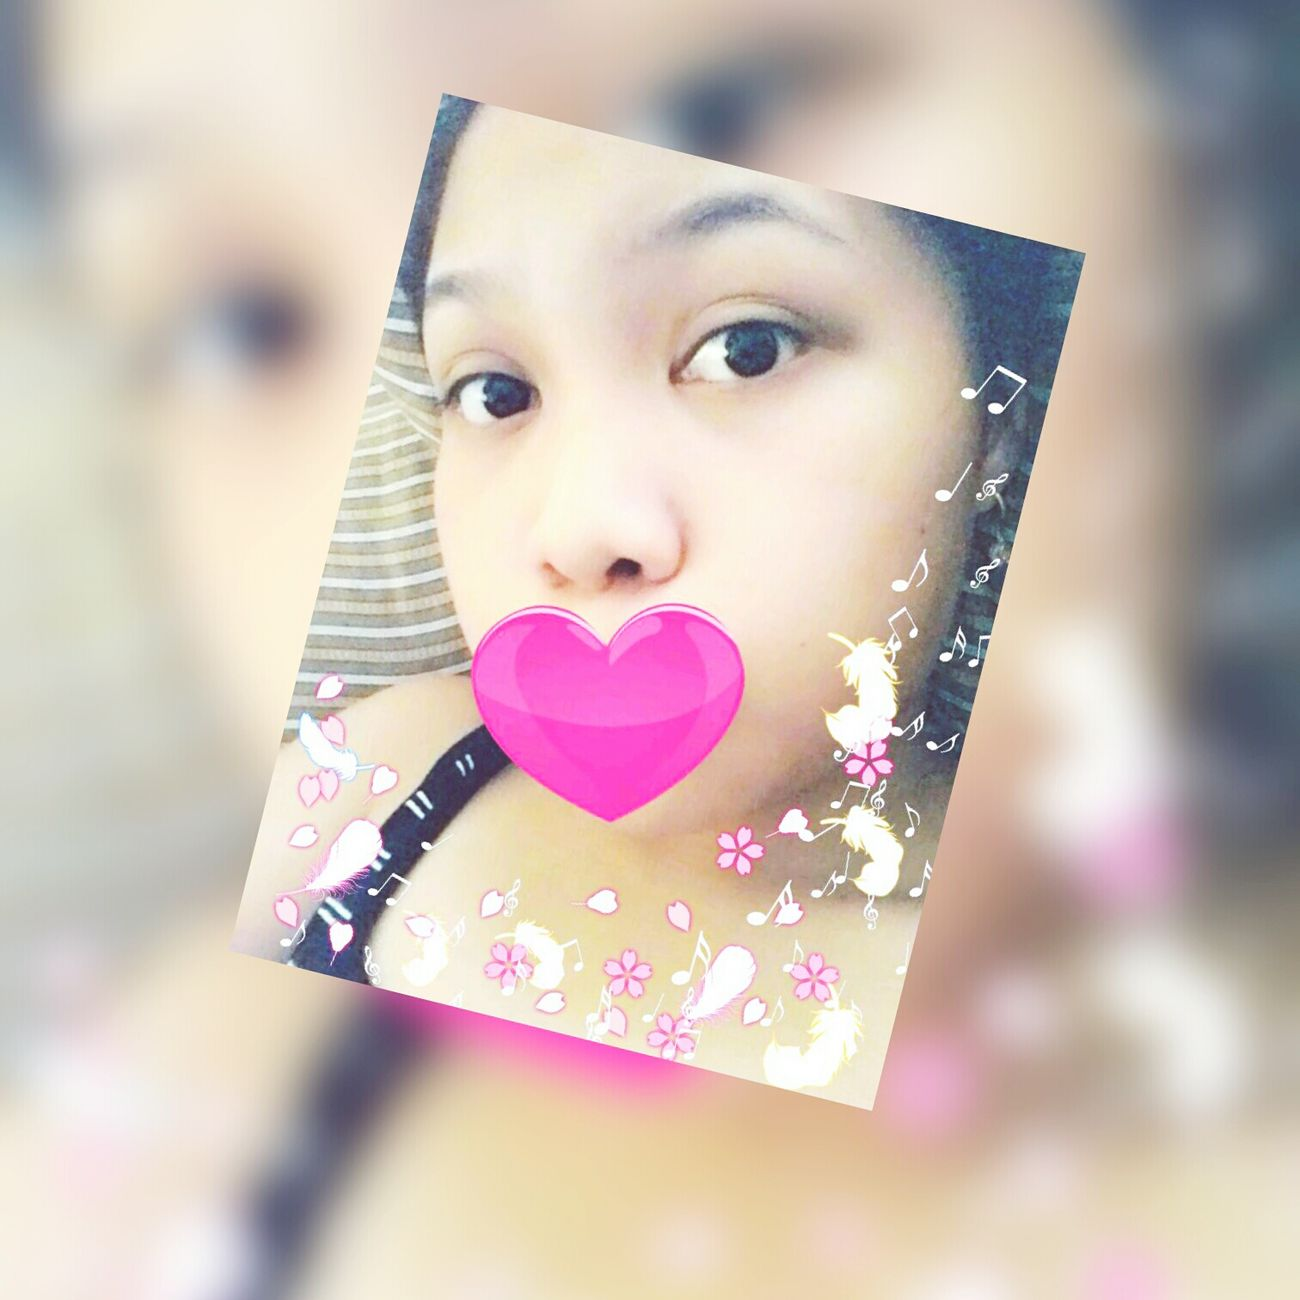 When you're trying to look kawaii, but you failed. So just overdo it with stickers and filters. CuteFailed KawaiiModeOn ♡Stickers Eyeeyecaptain Feathers Petals MusicalNotes HeartInLove